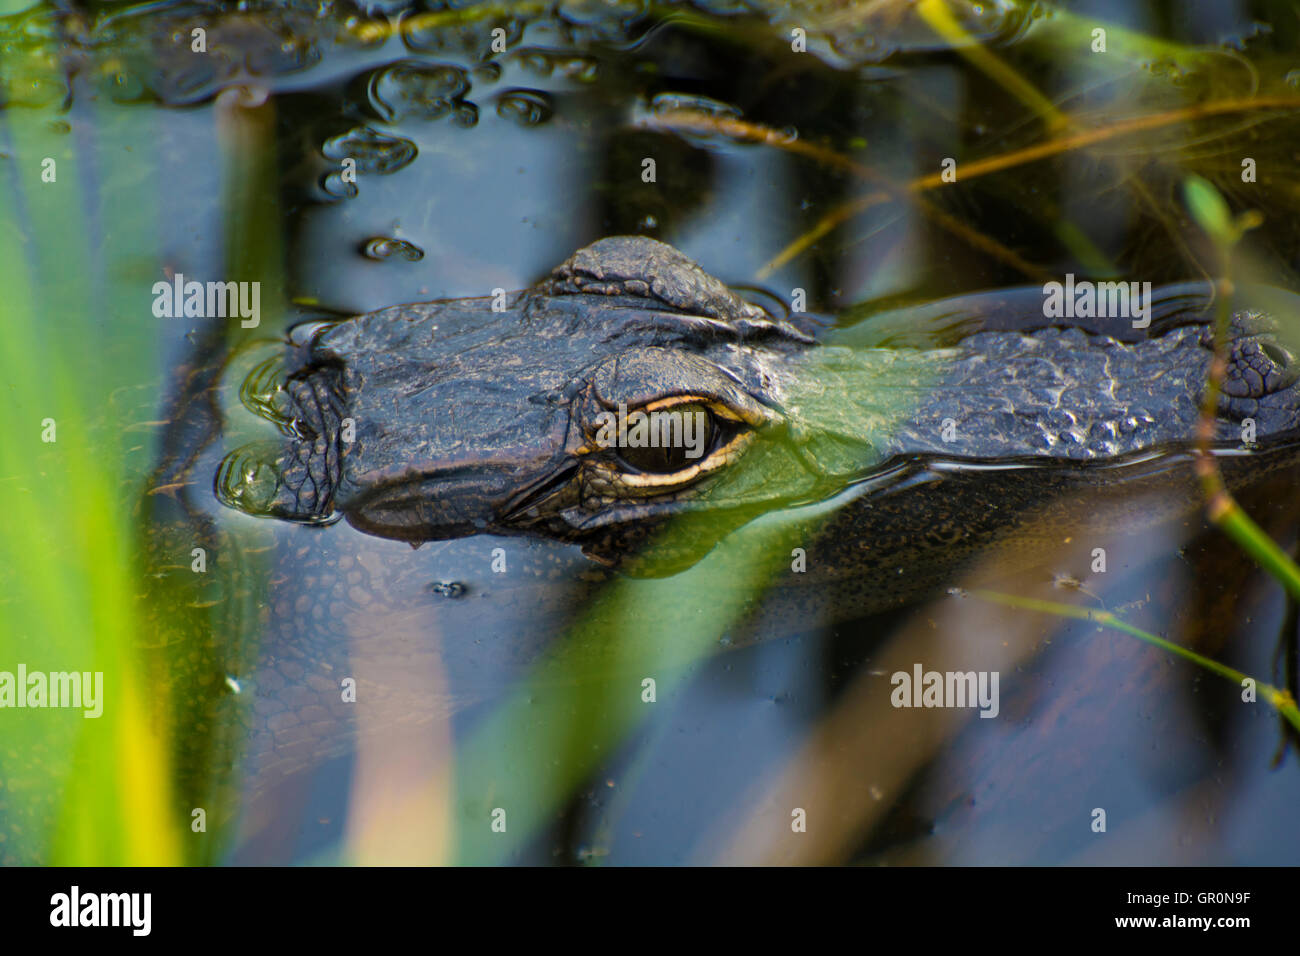 This image shows an Alligator cooling off submerged in swamp water. - Stock Image